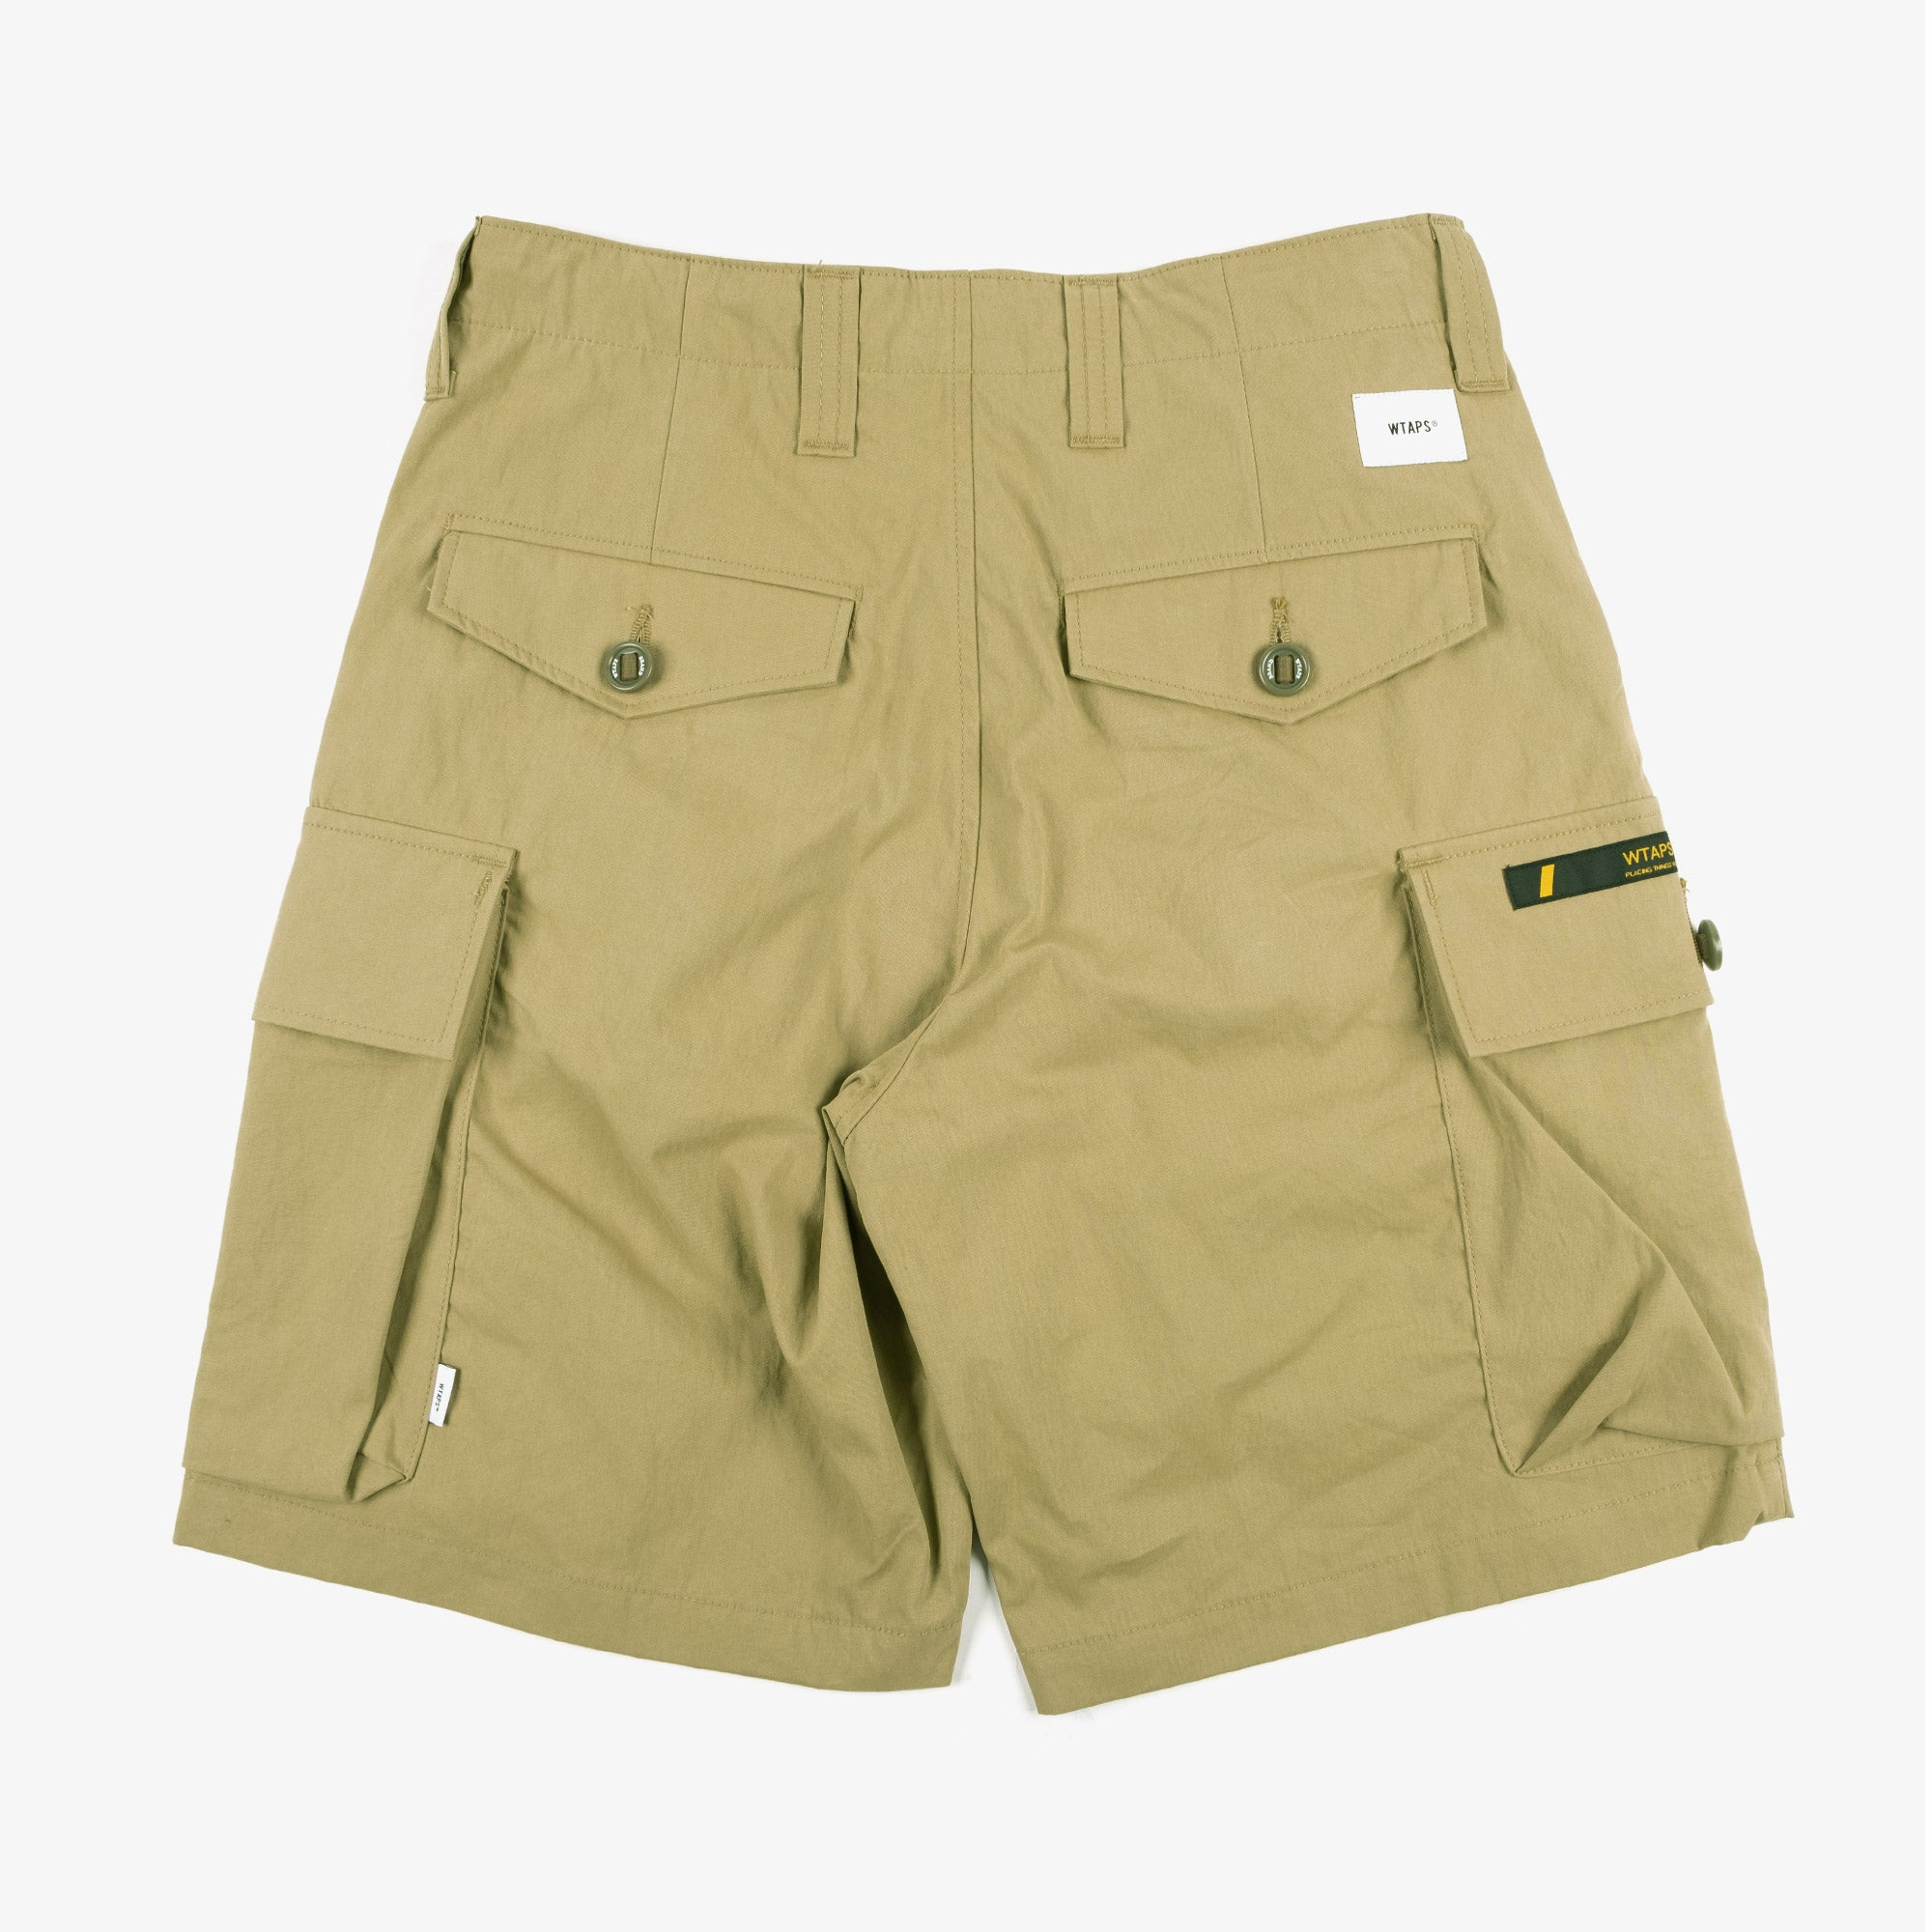 WTAPS Jungle Country Nyco Shorts - Olive Drab 6